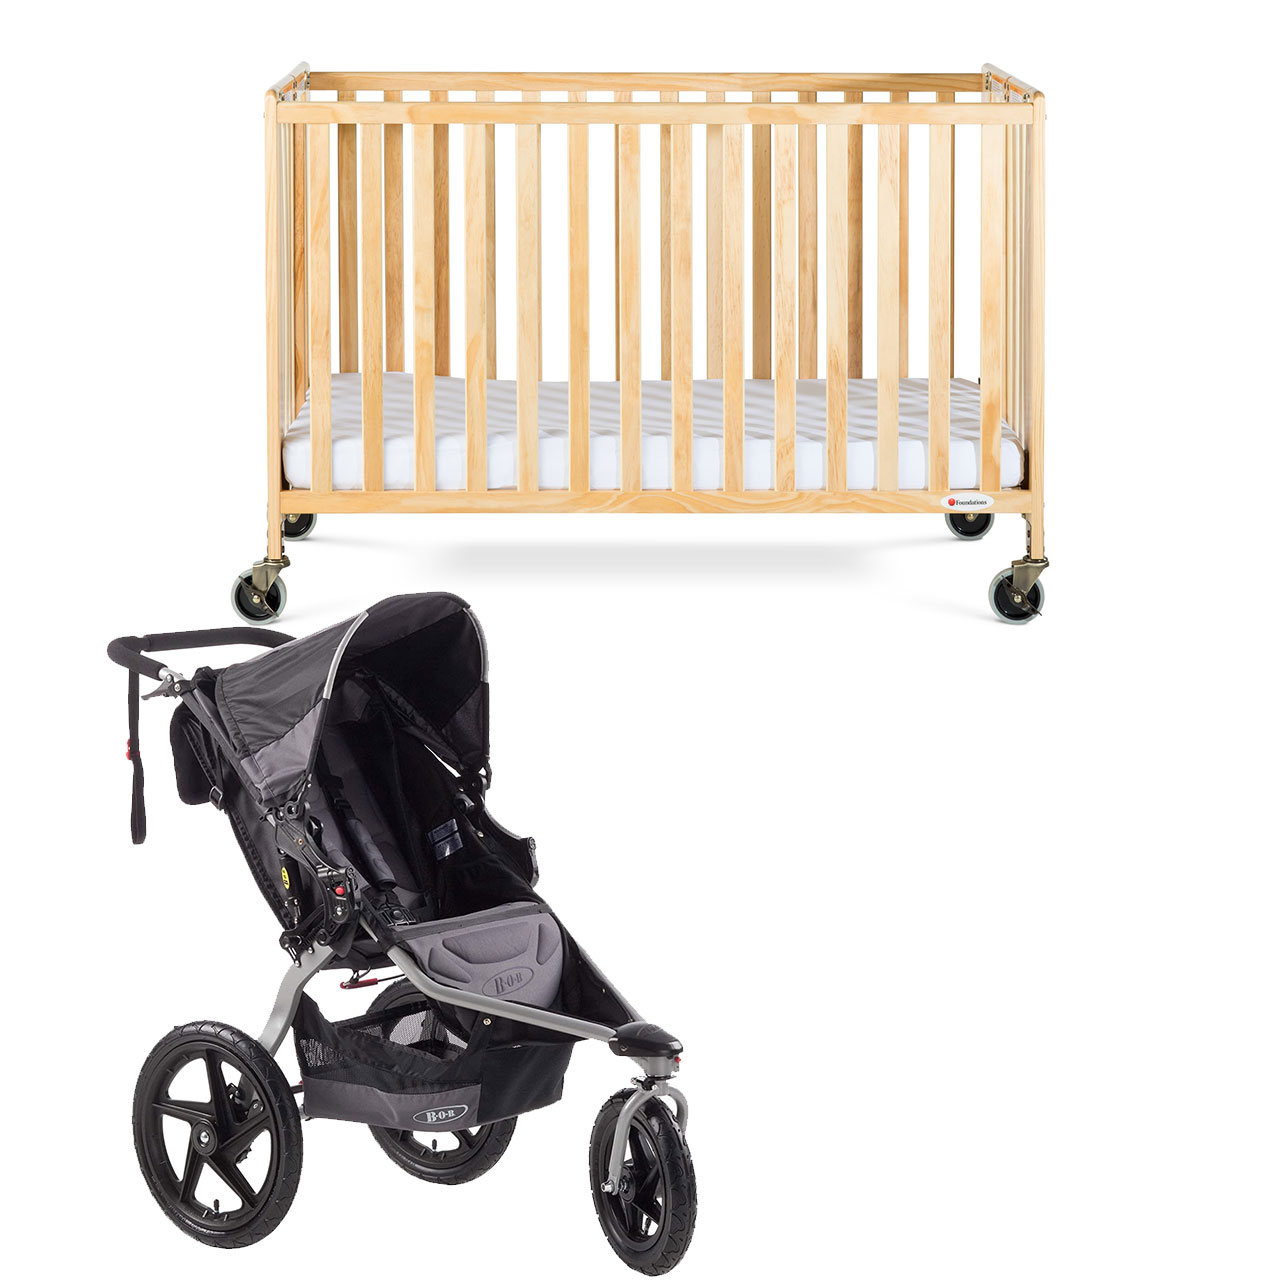 PACKAGE 14 (FULL SIZE FOLDING CRIB WITH BOB SINGLE STROLLER)